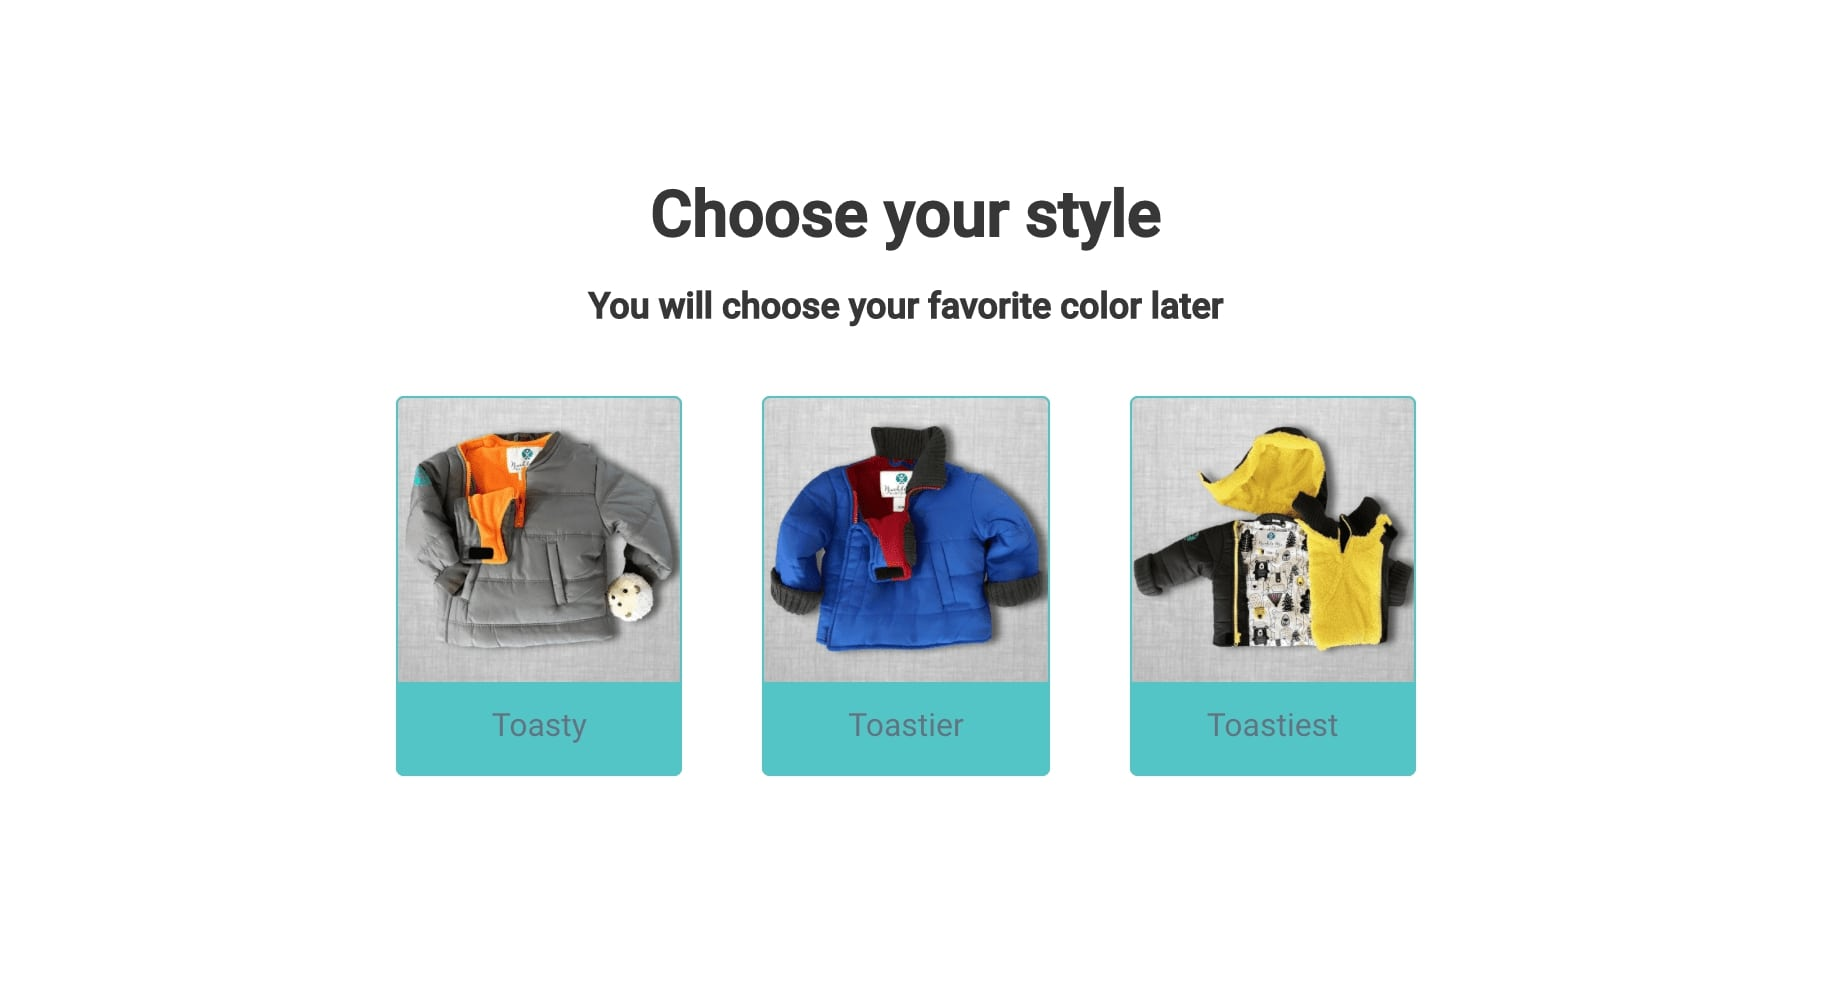 Screenshot of Buckle Me Baby Coats quiz page online. The question asks to choose your favorite style and shows three images of baby coats to choose from.